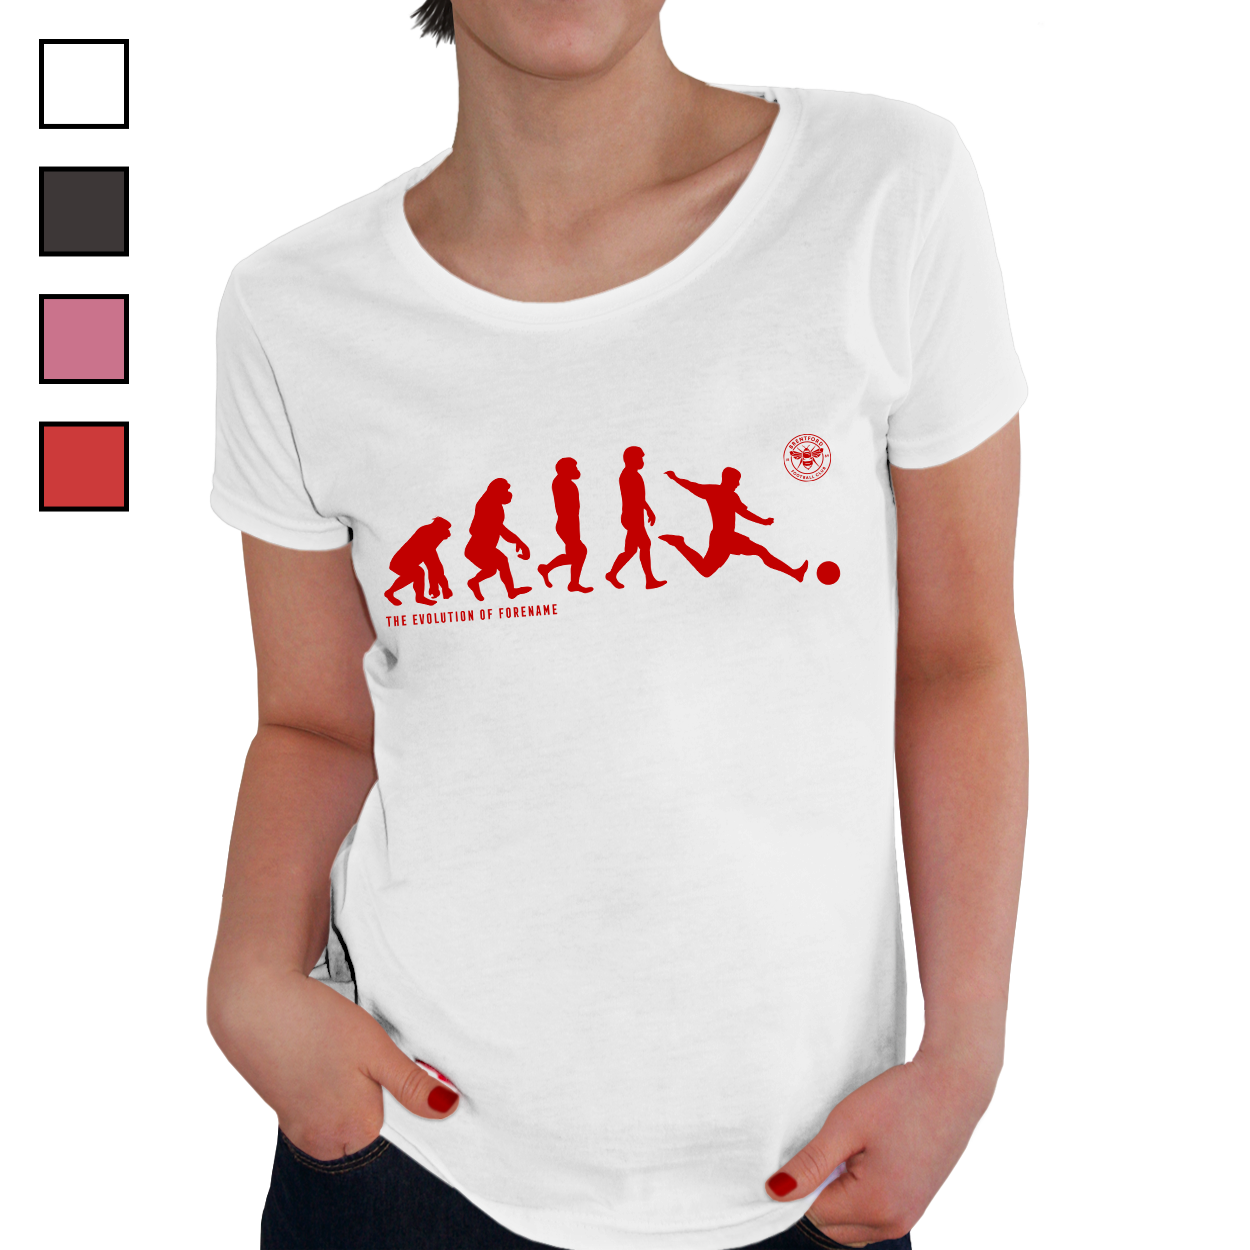 Brentford Evolution Ladies T-Shirt